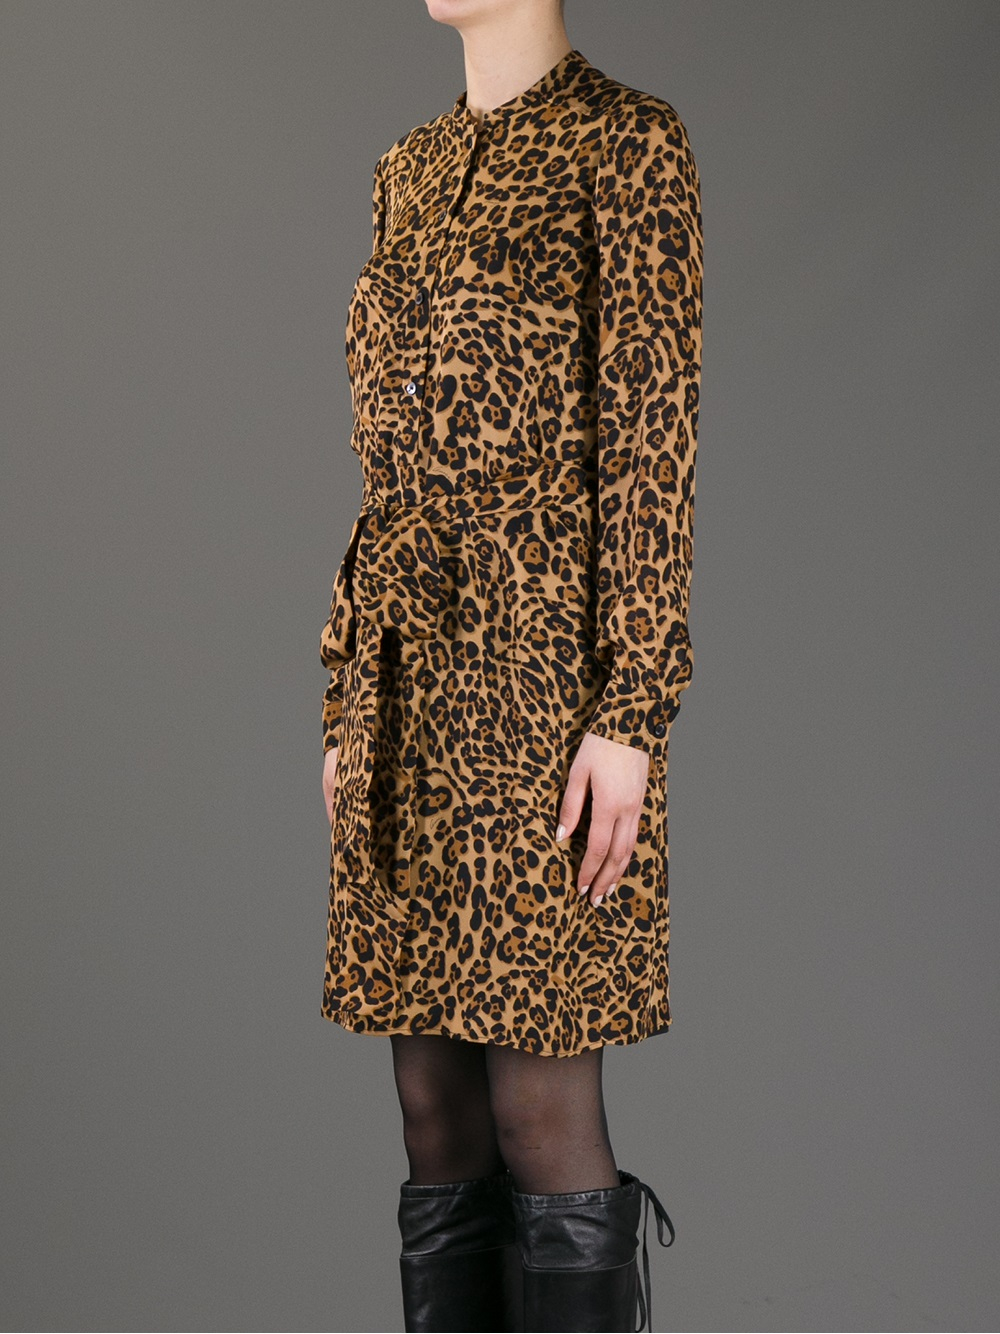 Gucci Leopard Print Blouse Dress In Brown Lyst